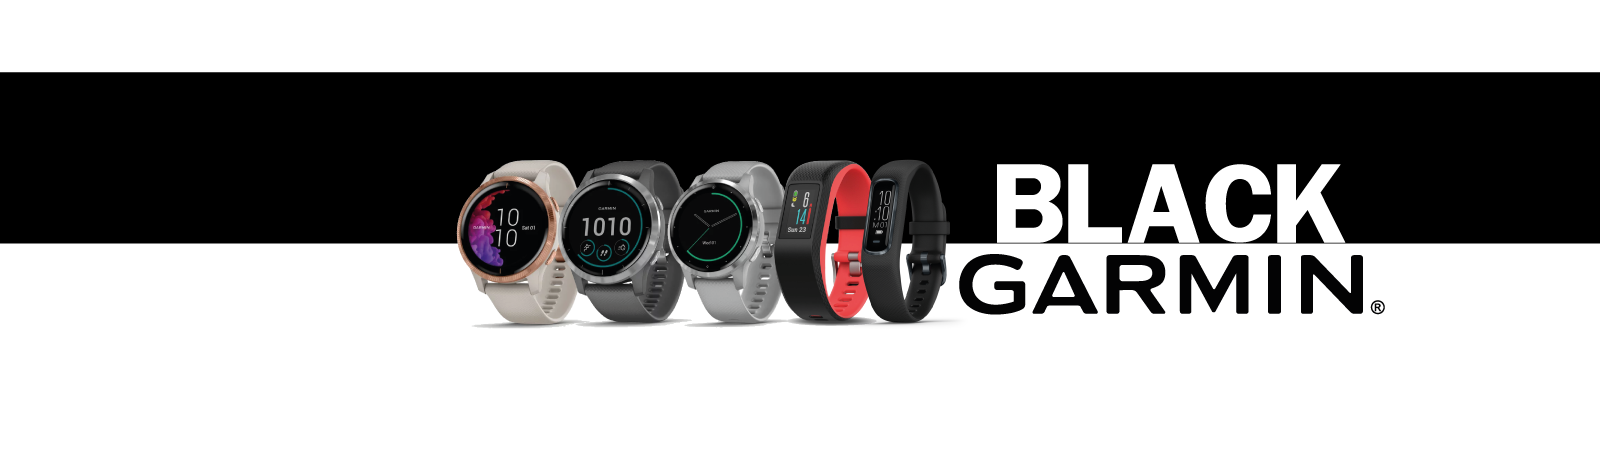 BLACK-GARMIN-BANNER-WEB